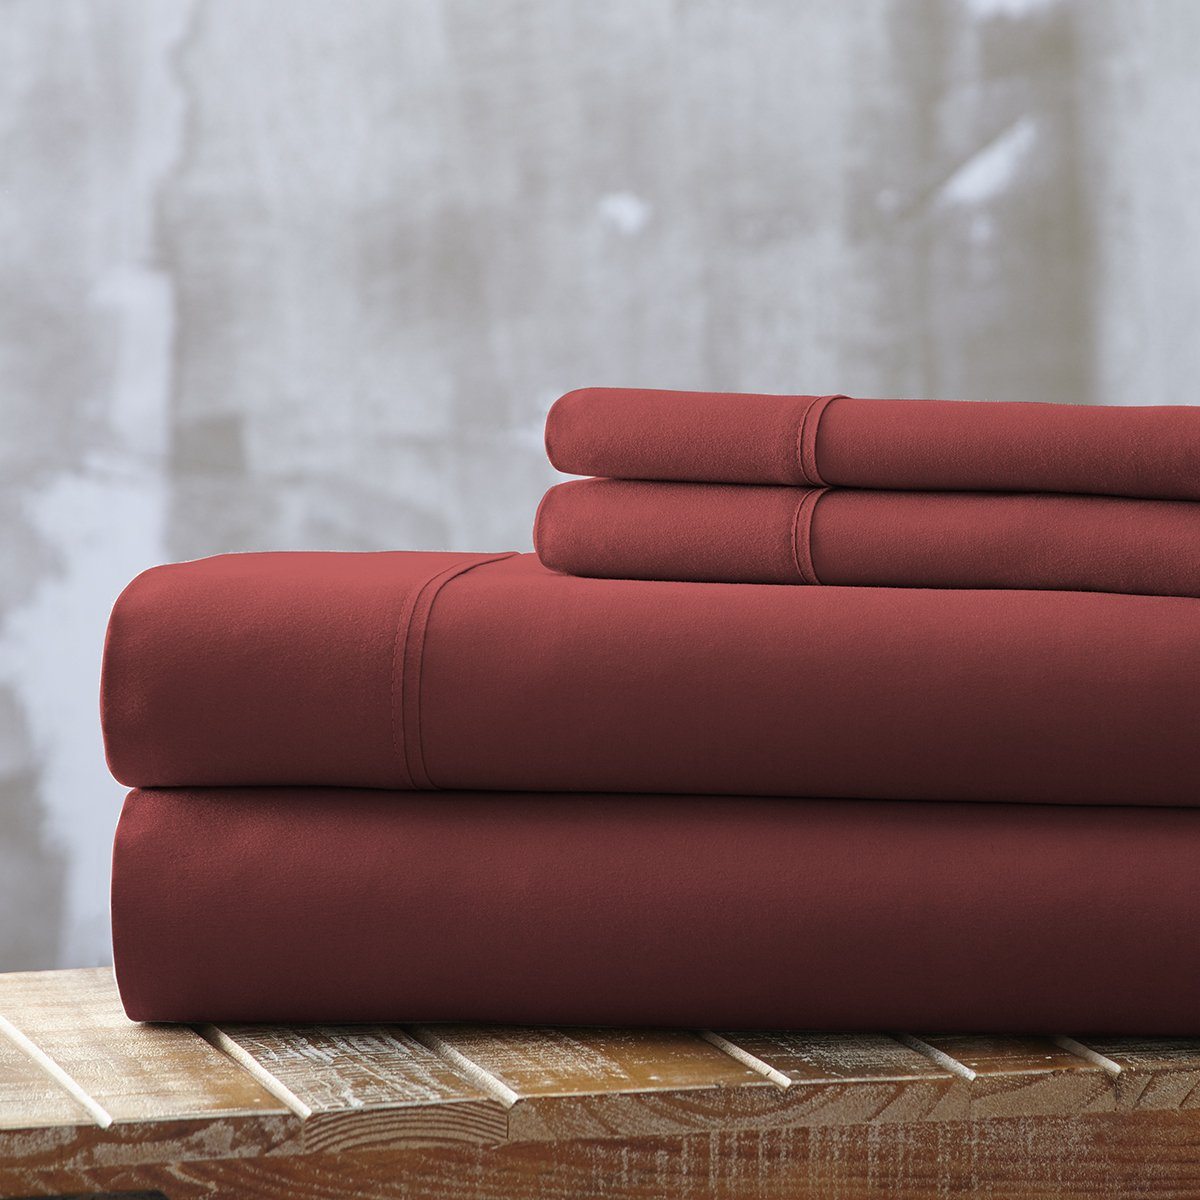 Spirit Linen, Inc Hotel 5th Ave EE-FULL-BURGUNDY-4PC Full Burgundy Everyday Essentials 1800 Series 4Pc Sheet Set